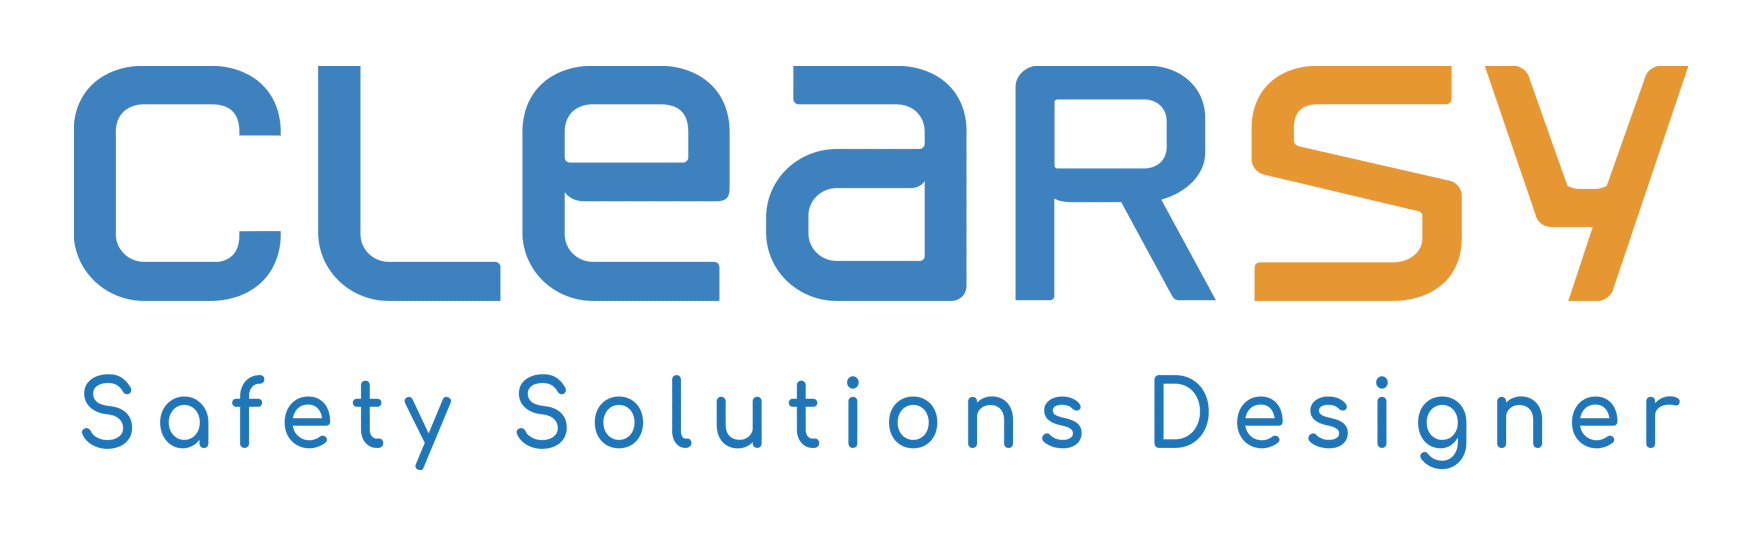 CLEARSY Safety Solutions Designer